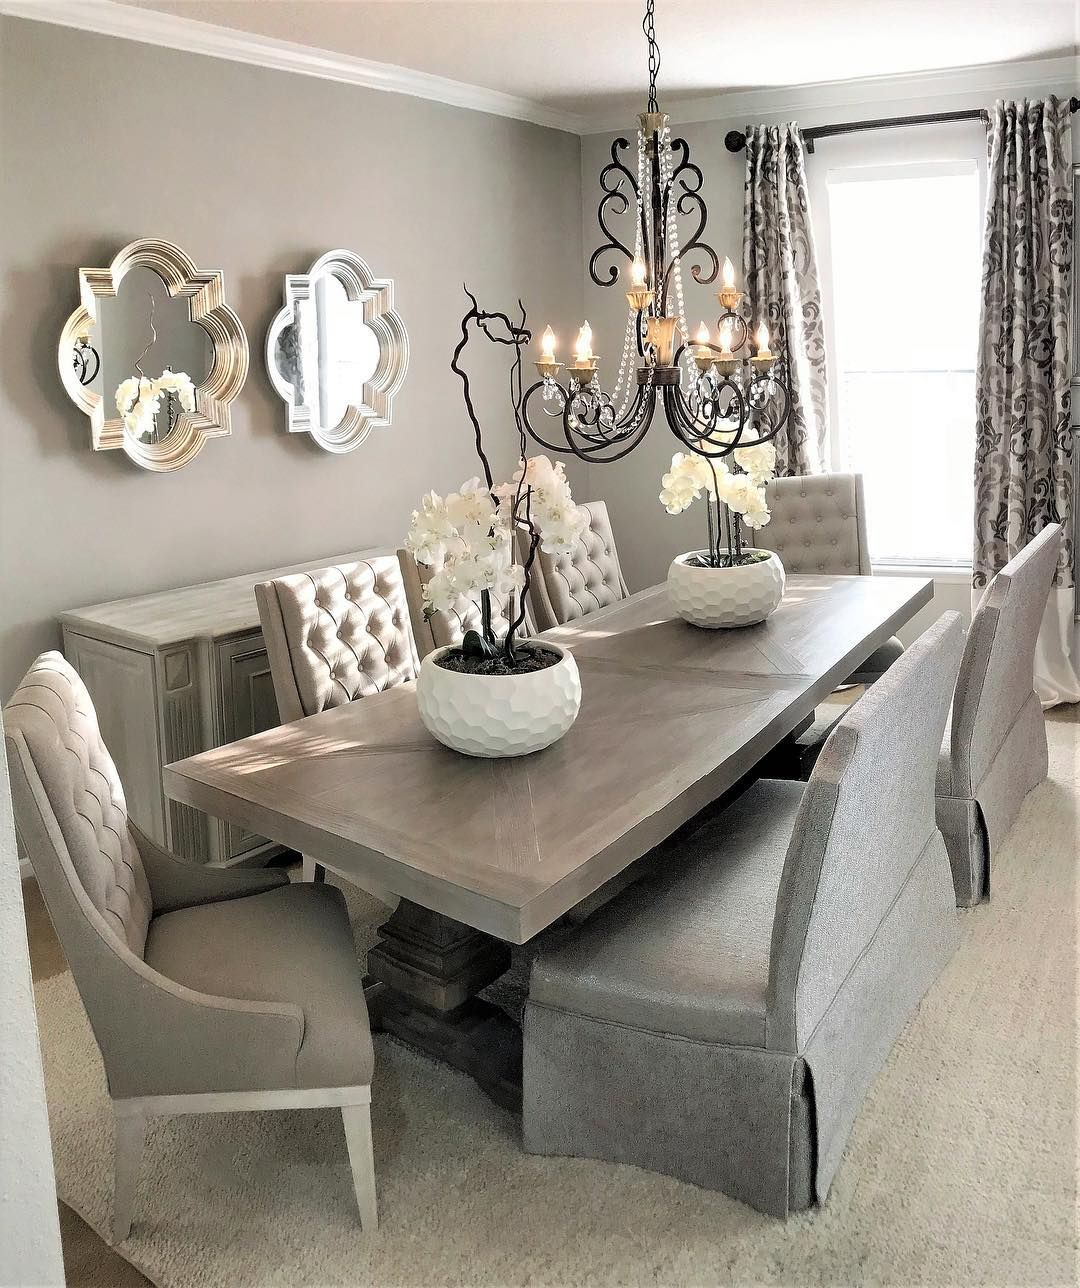 American Signature Furniture On Instagram Feast Your Eyes On This Luxe Dining Room Design B Luxe Dining Room Farmhouse Style Dining Room Dining Room Makeover